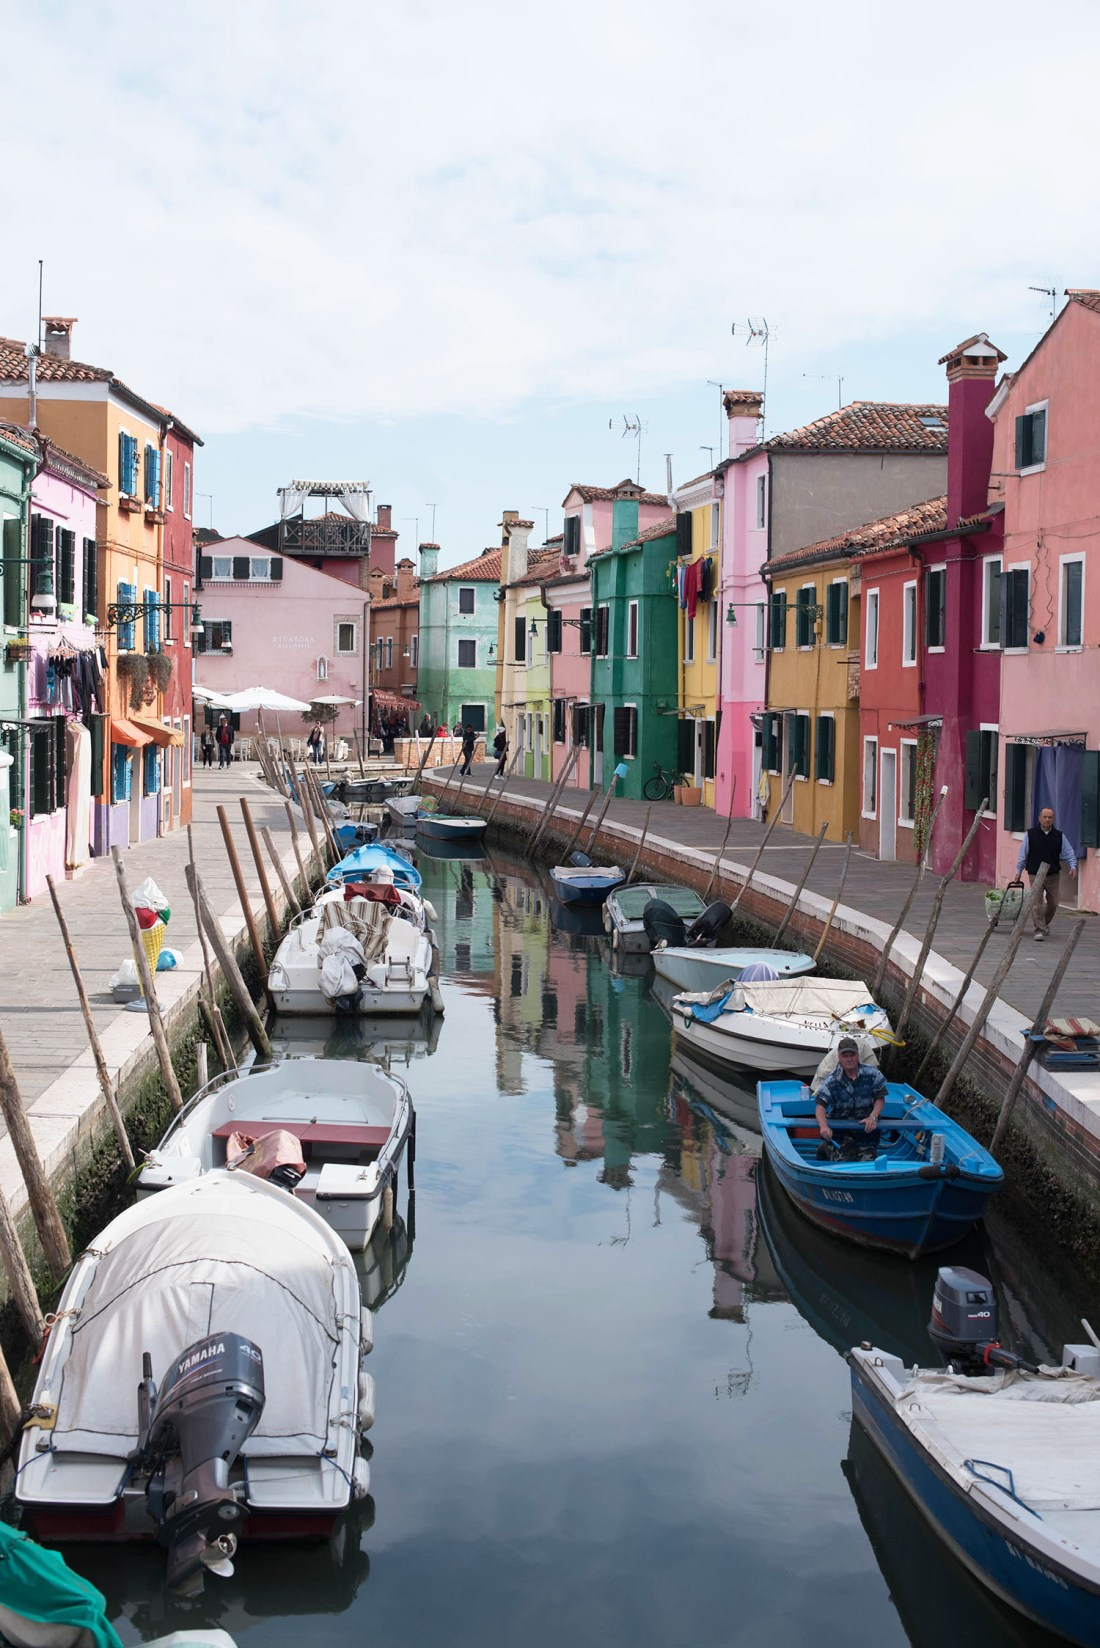 Colourful houses on either side of the canal in Burano, Italy, captured by travel blogger Cee Fardoe of Coco & vera